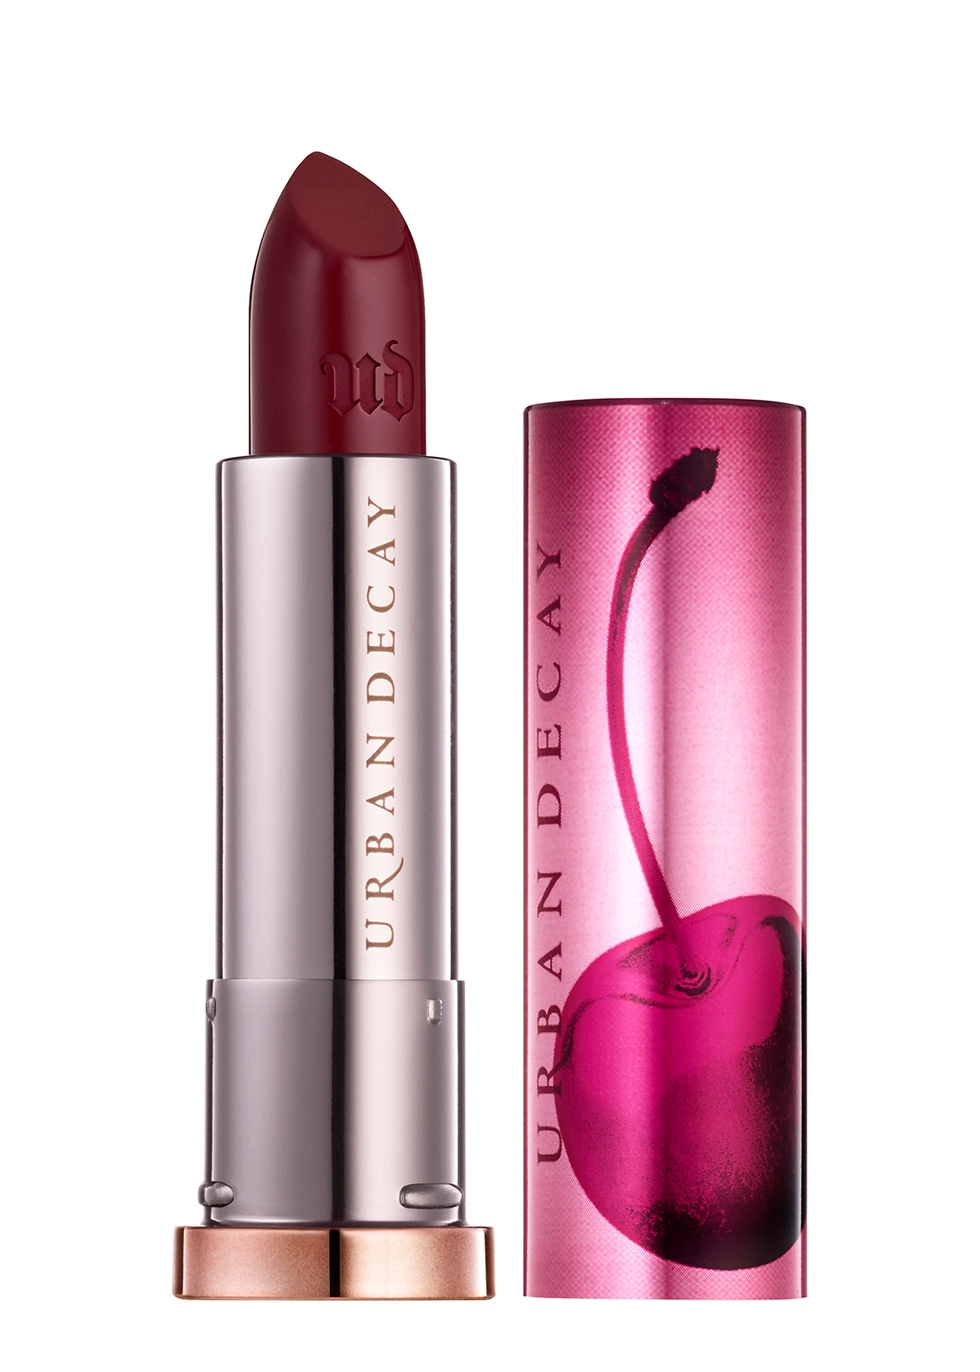 Vice Lipstick Cherry - Urban Decay